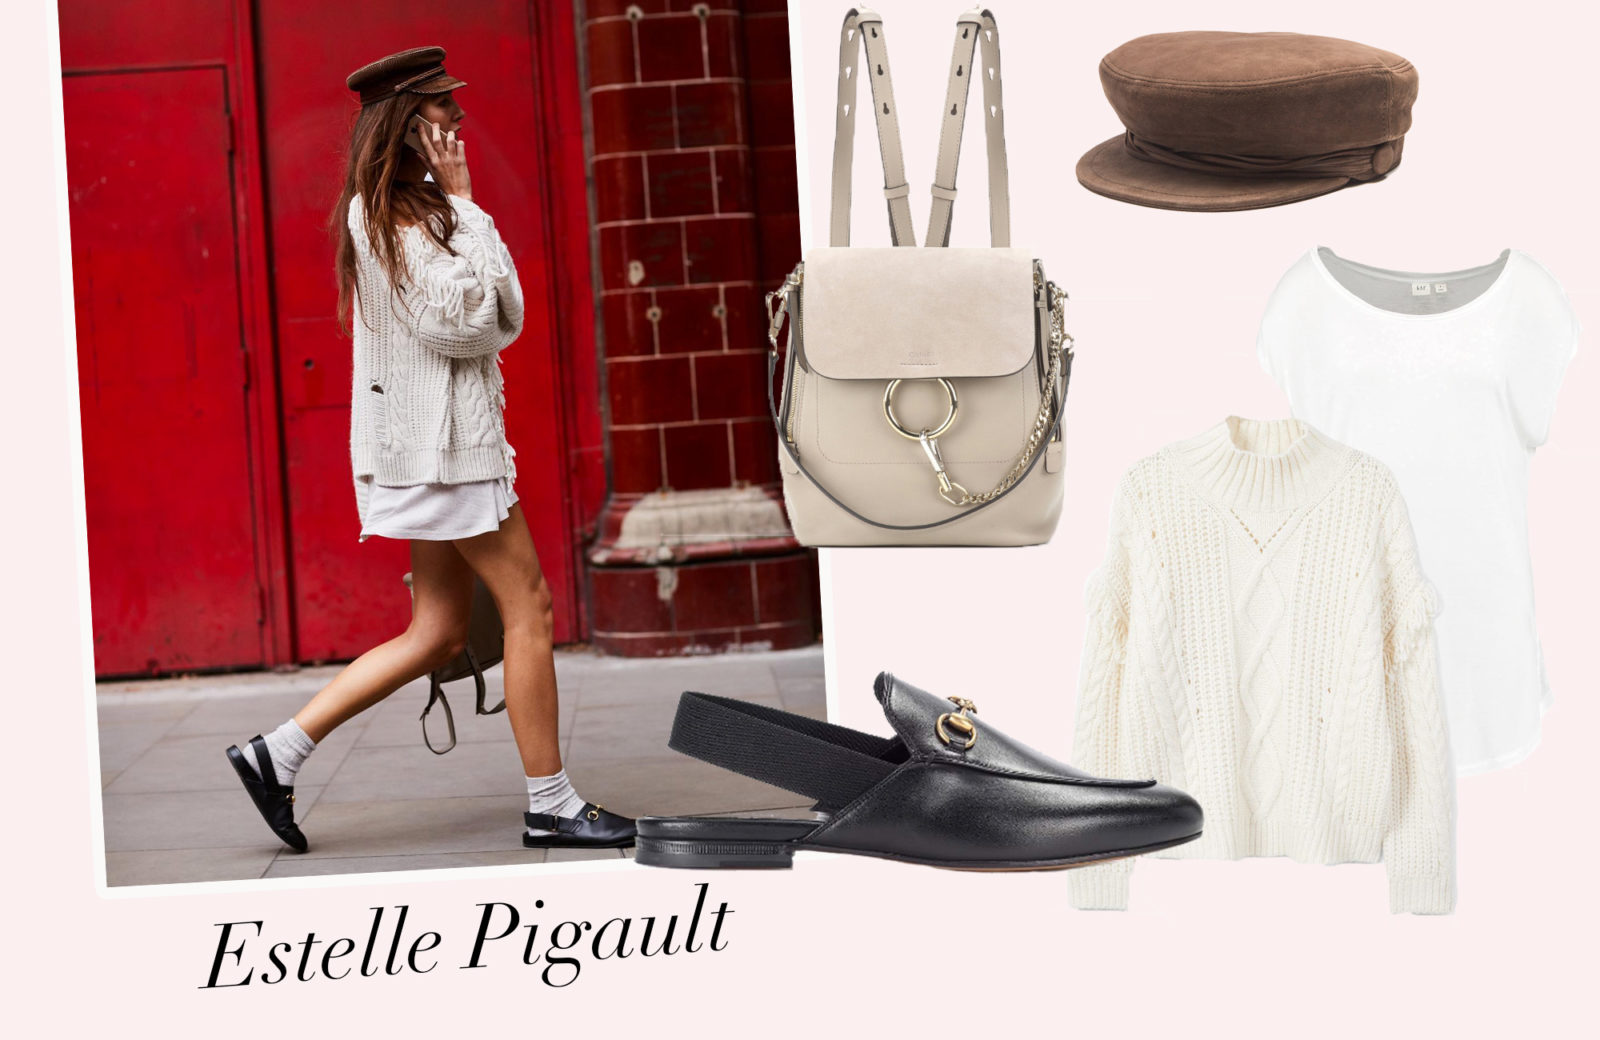 dee0175c803f Estelle Pigault. Fotos via instagram stylesightworldwide